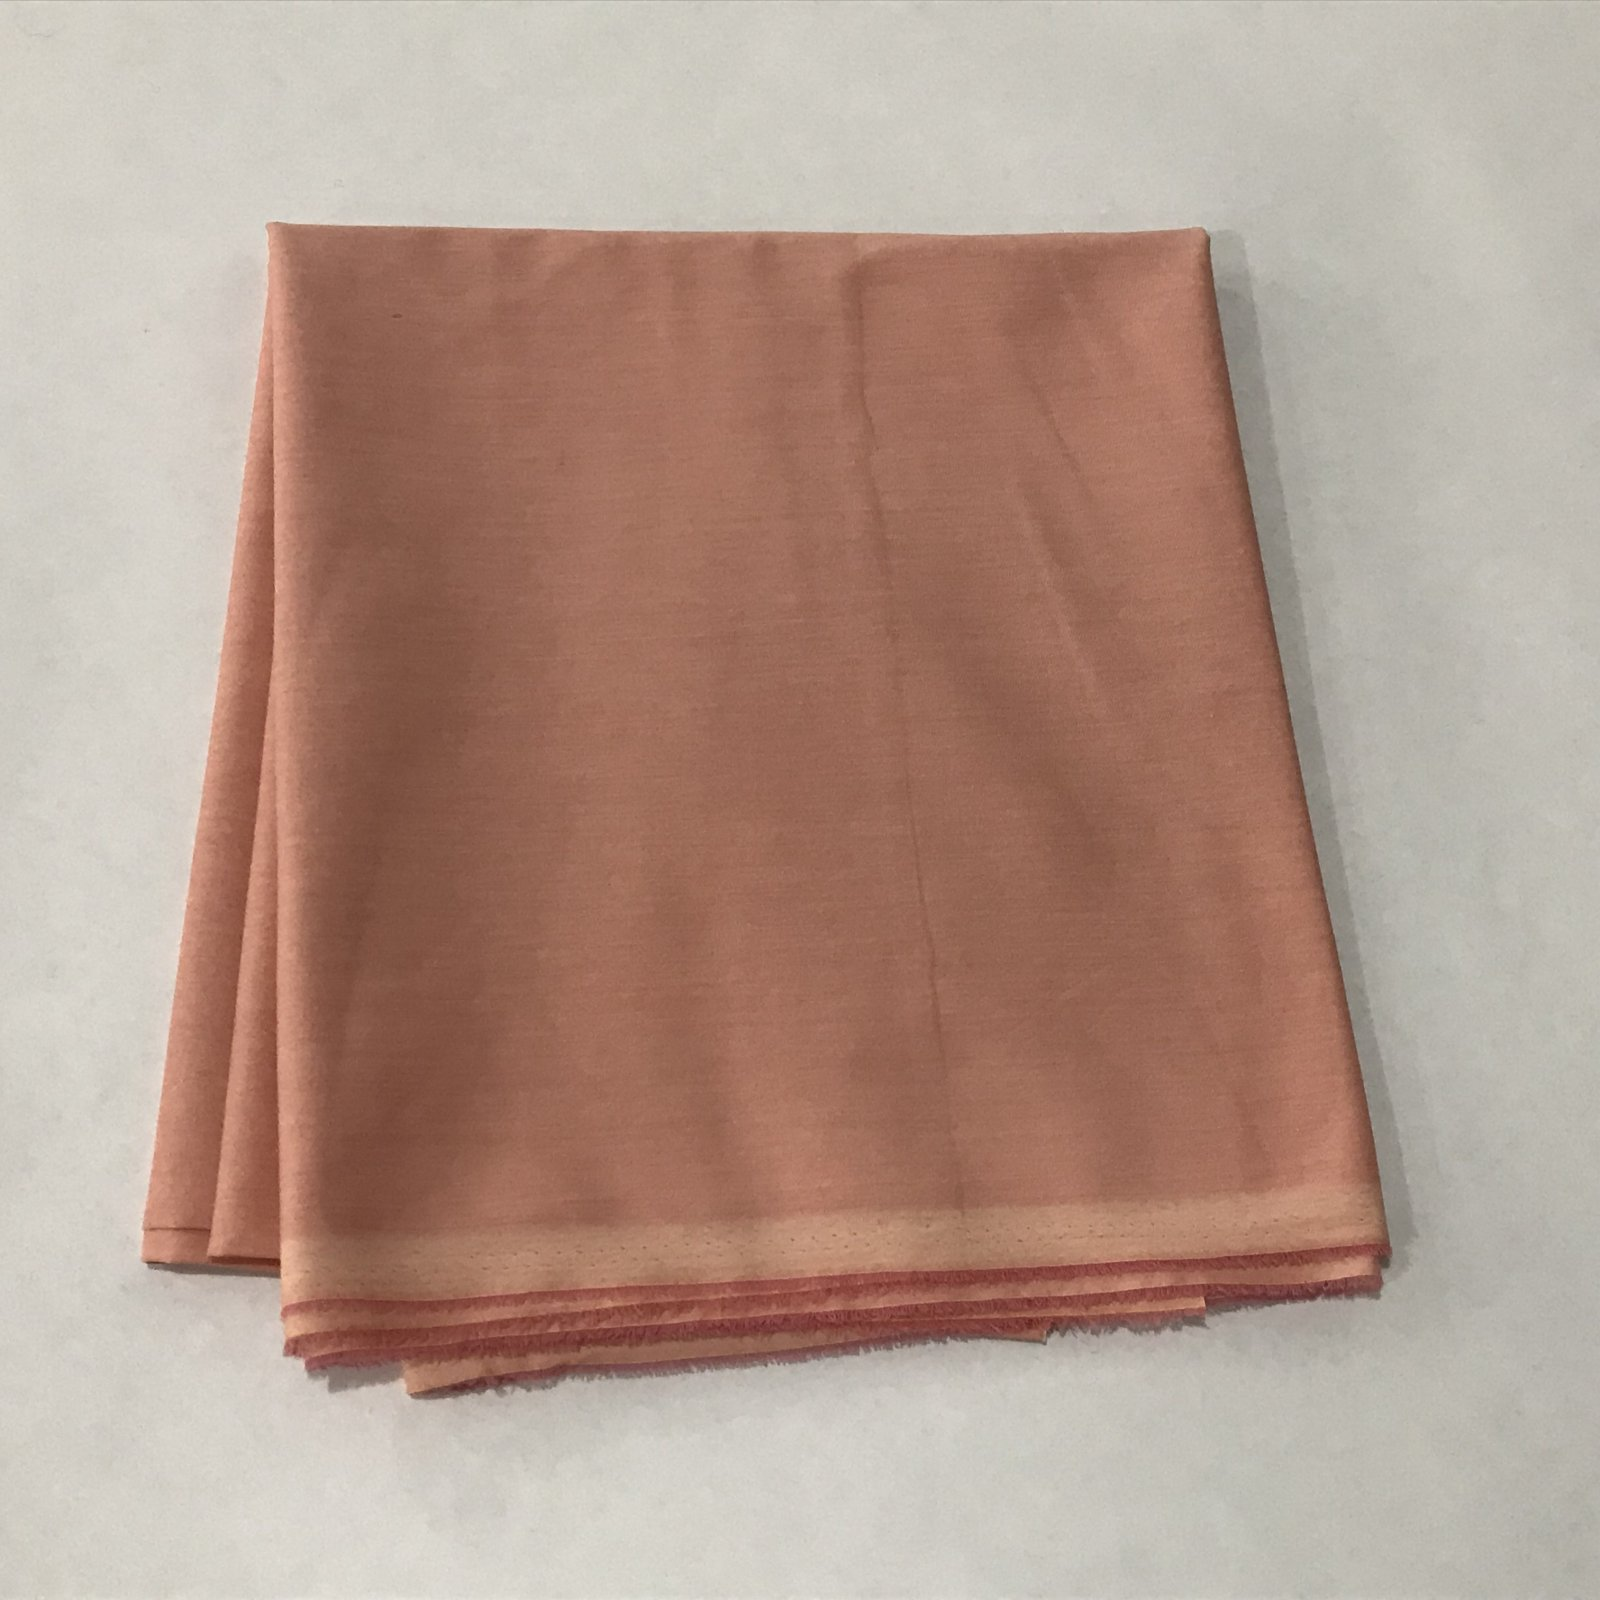 Stretch Cotton - Peach - 1 1/2 yard